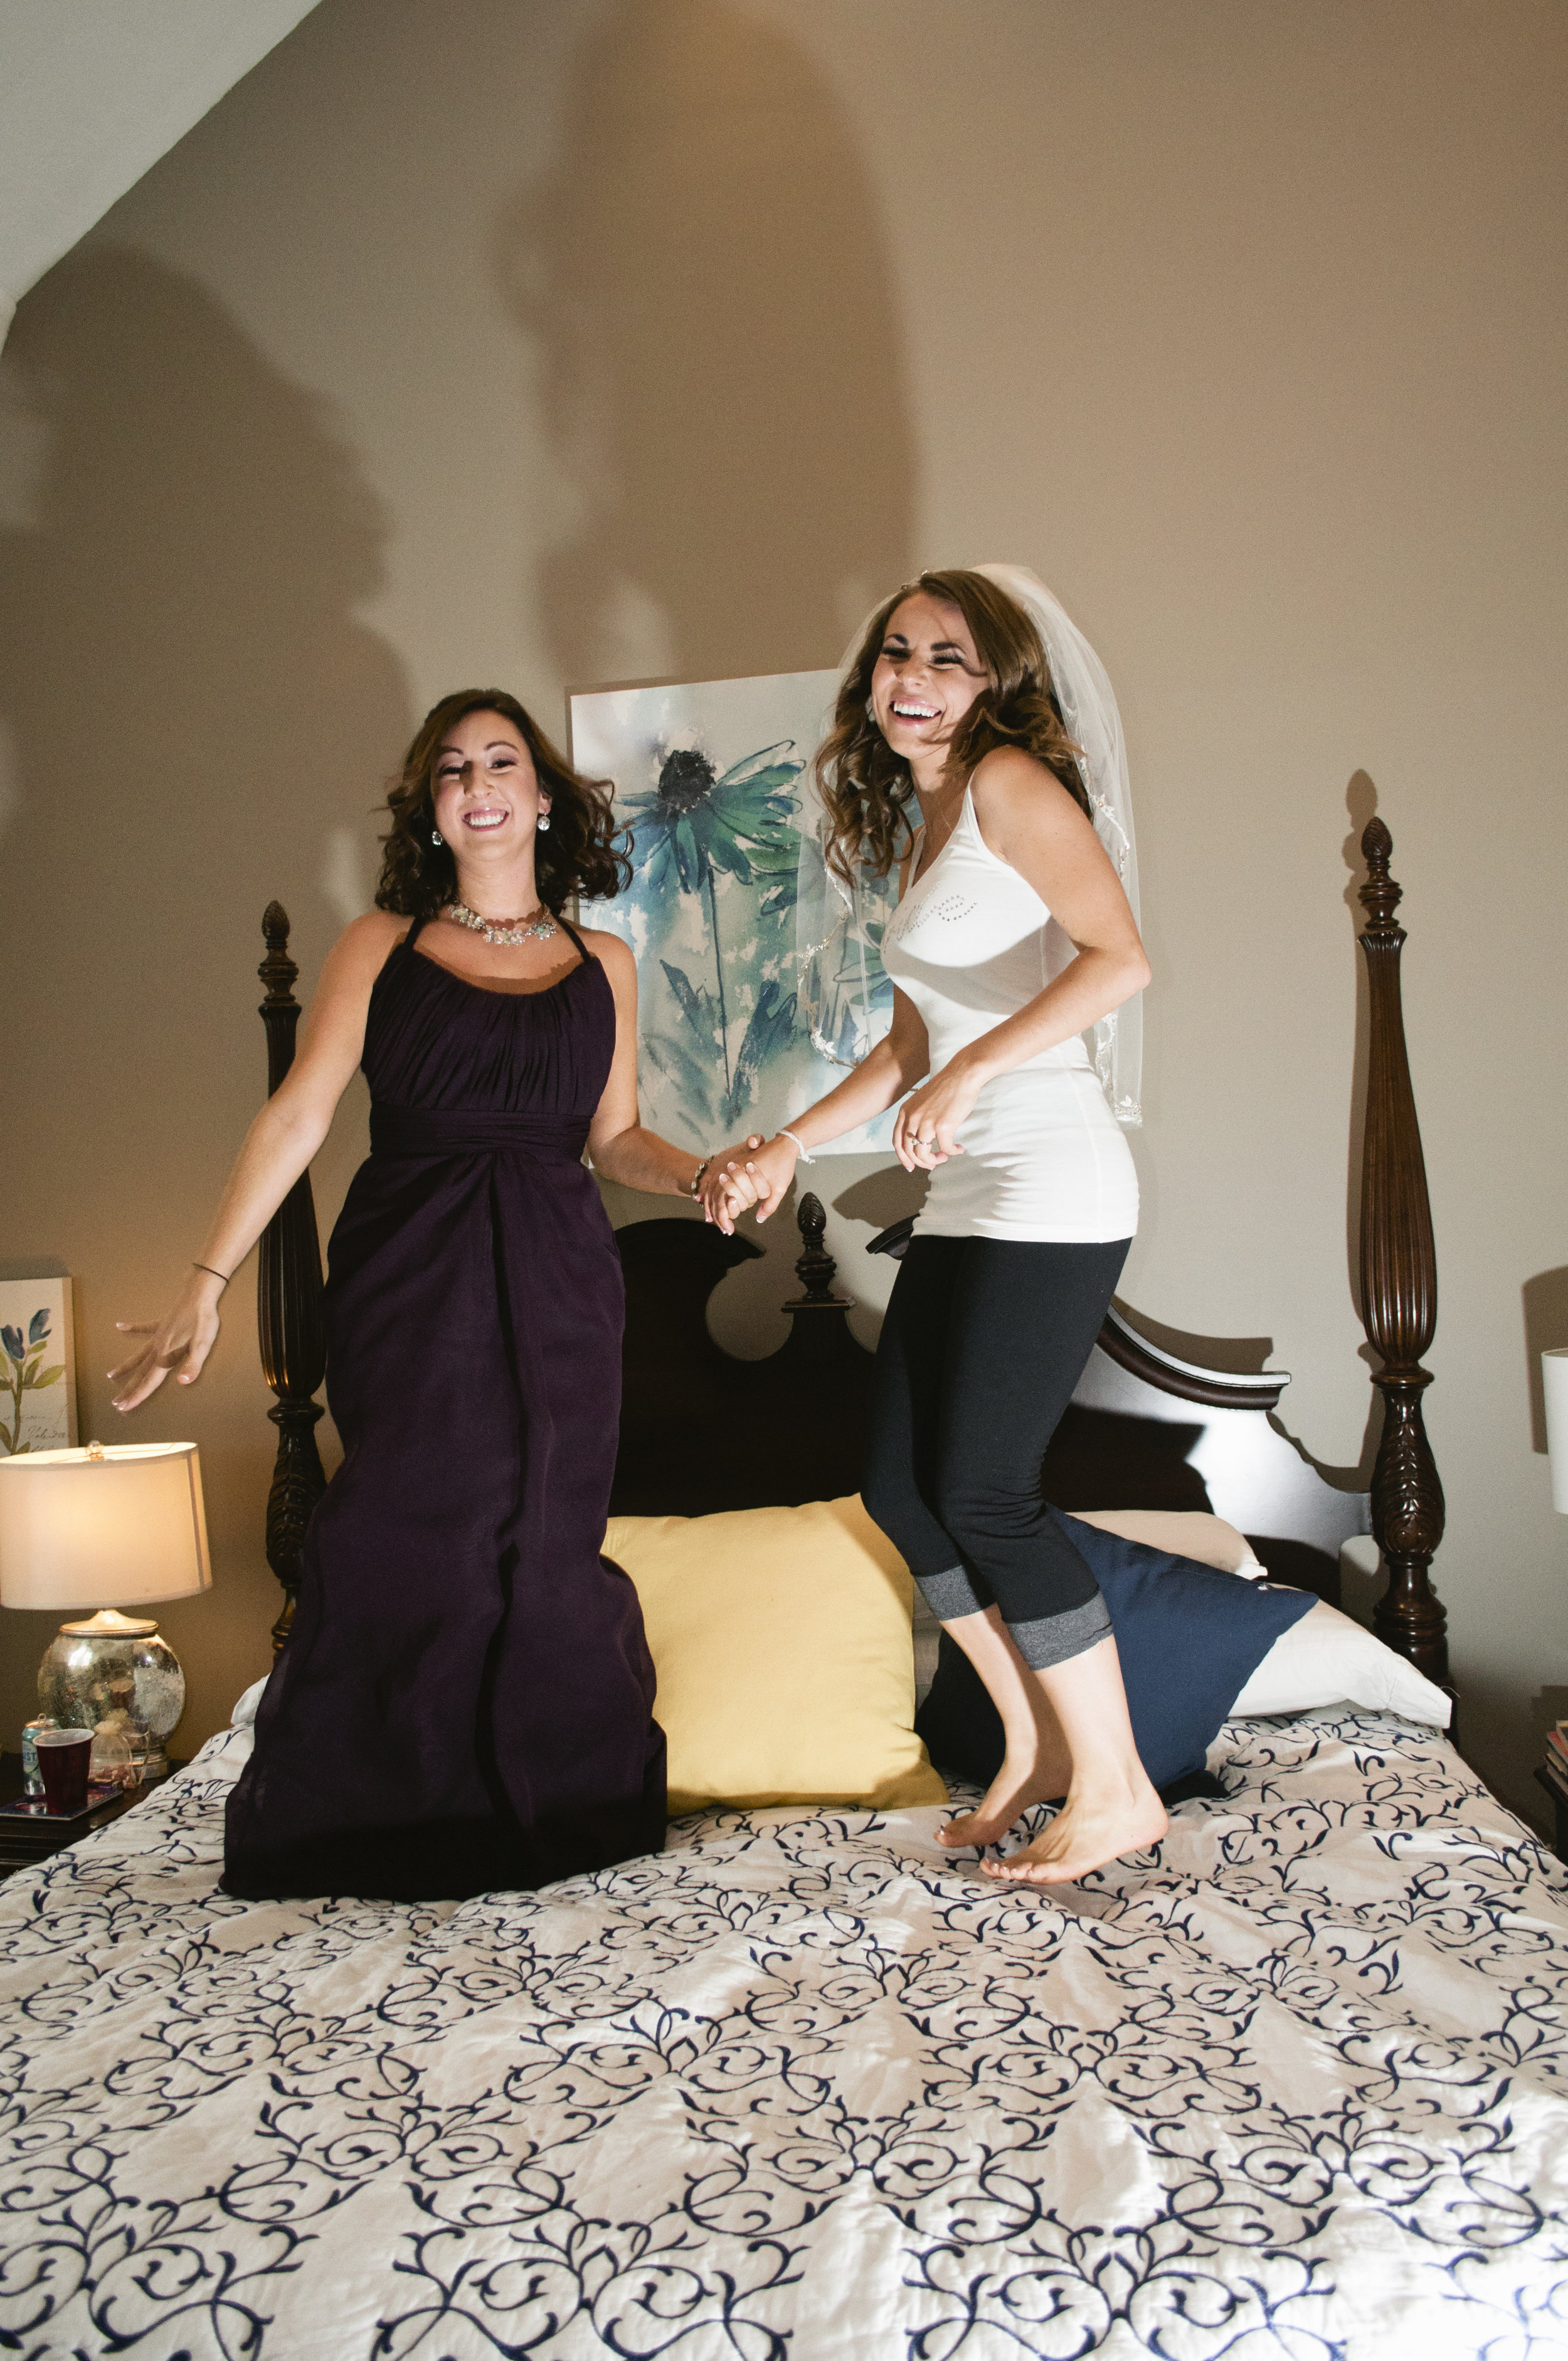 Bride with Maid of Honor jumping on bed the morning of the wedding